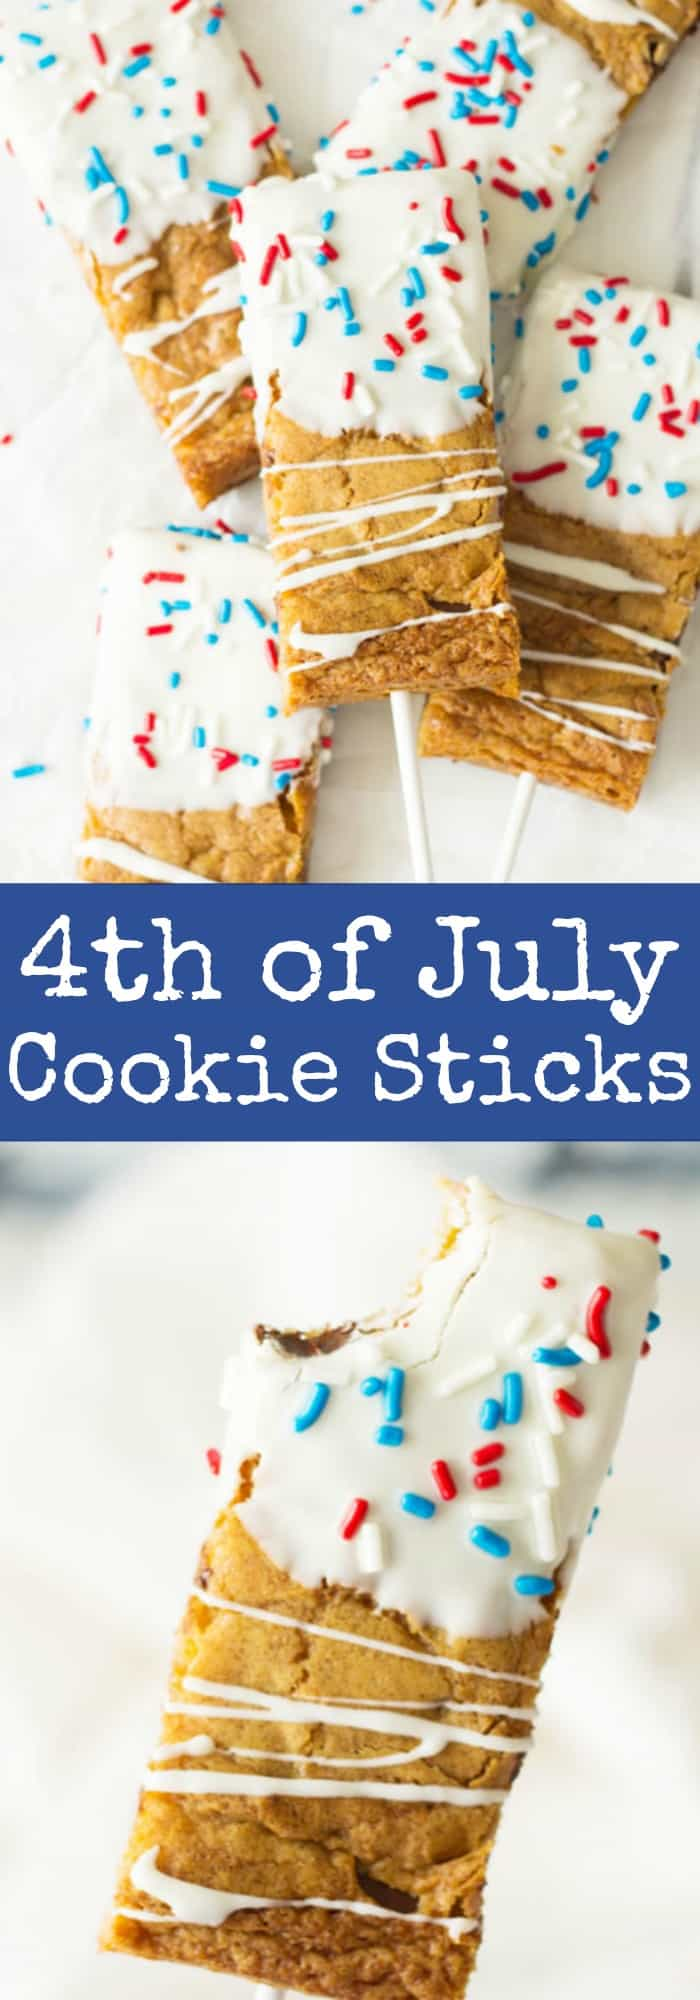 Fourth of July Cookie Sticks -a chewy chocolate chip cookie bar dipped in white chocolate then sprinkled with red, white and blue sprinkles! | www.countrysidecravings.com